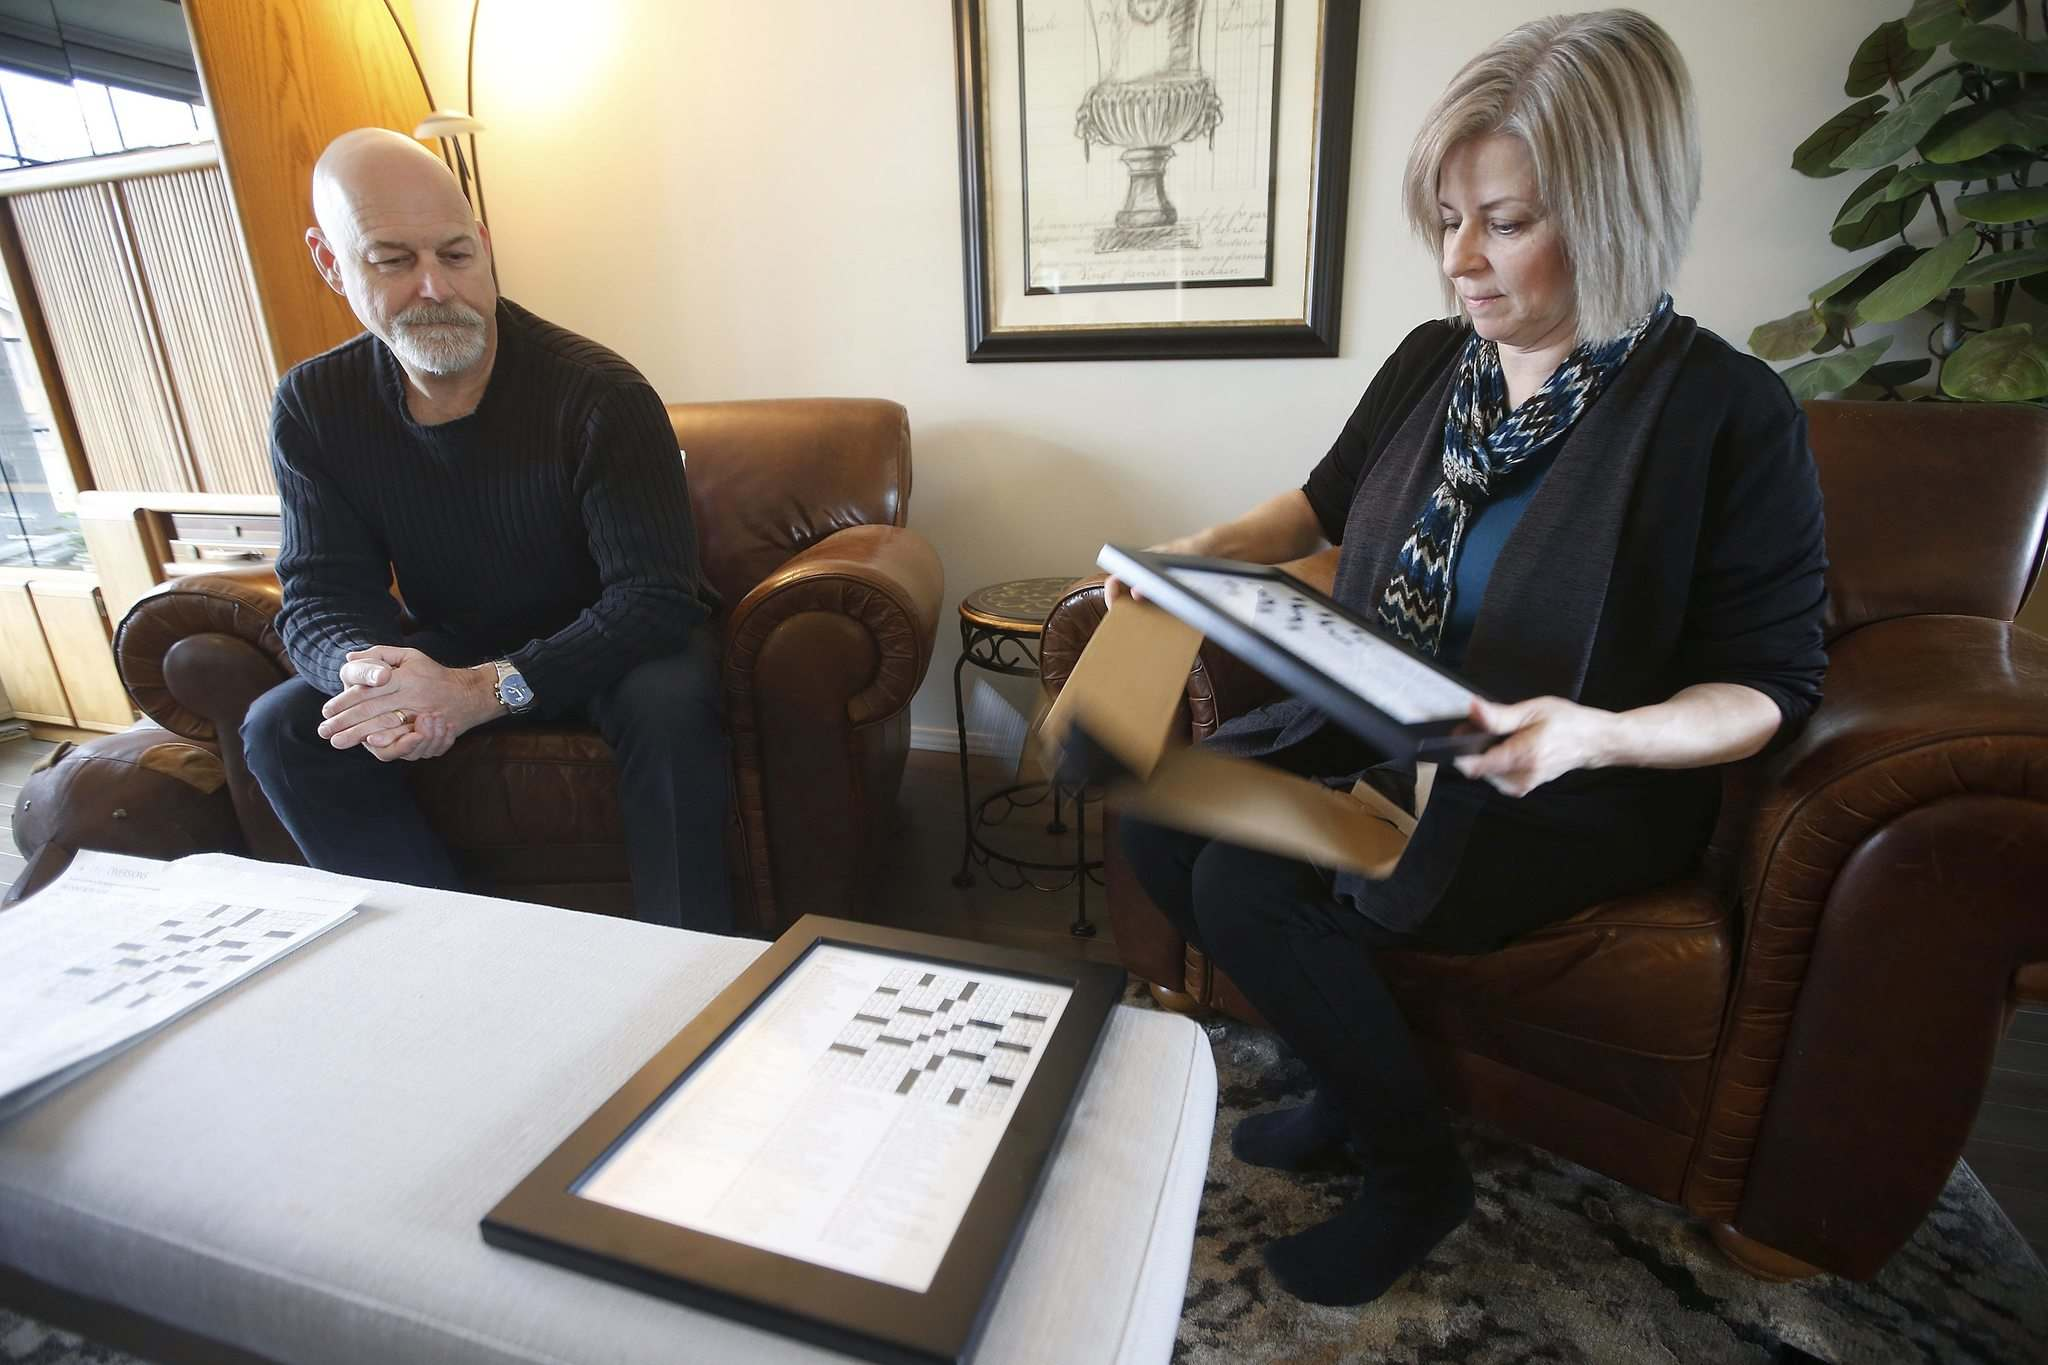 Leanne Cadieux unwraps framed copies of a personalized crossword in their home on Sunday.</p>